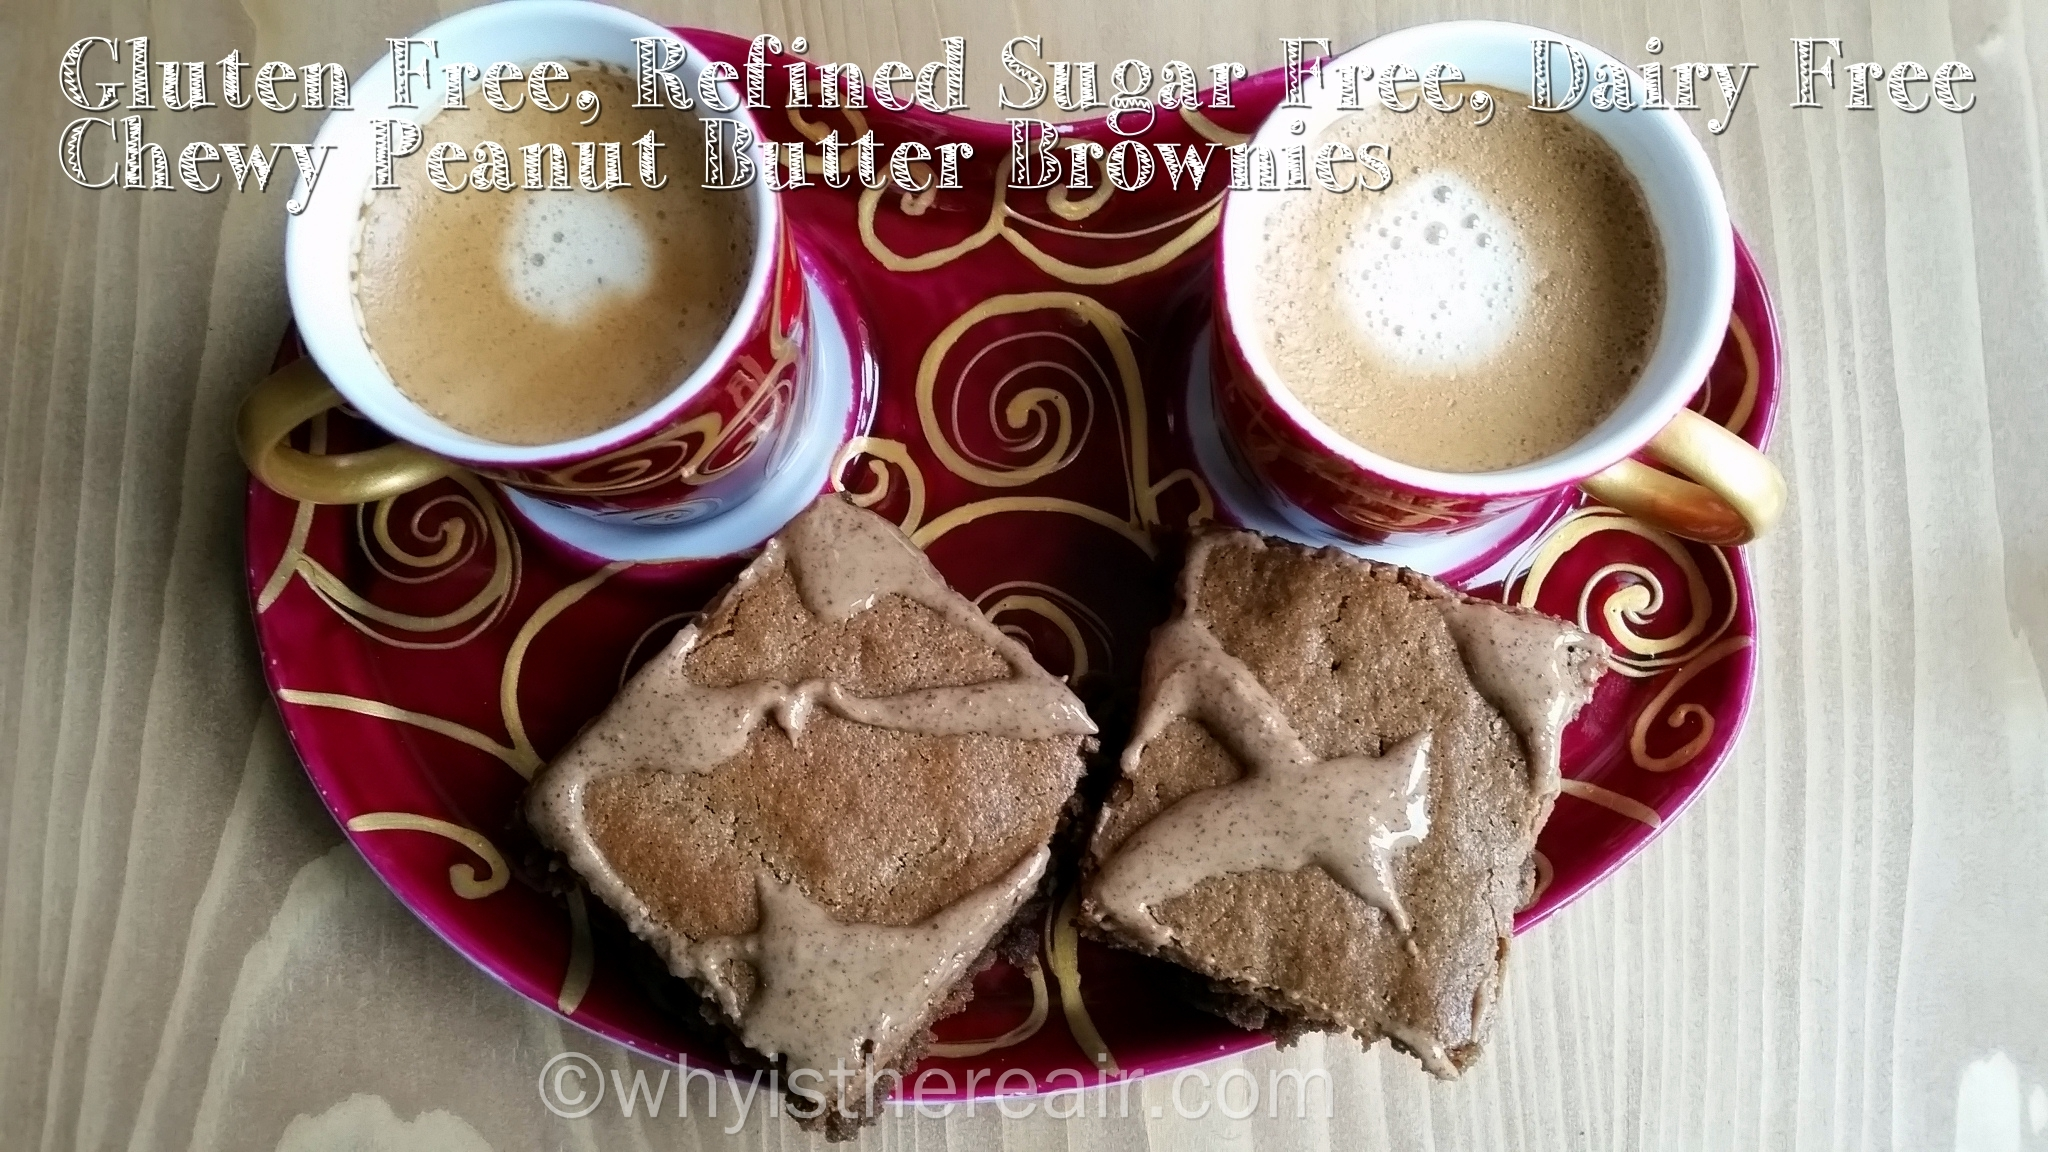 Gluten Free, Refined Sugar Free, Dairy Free Chewy Peanut Butter Teff Brownies